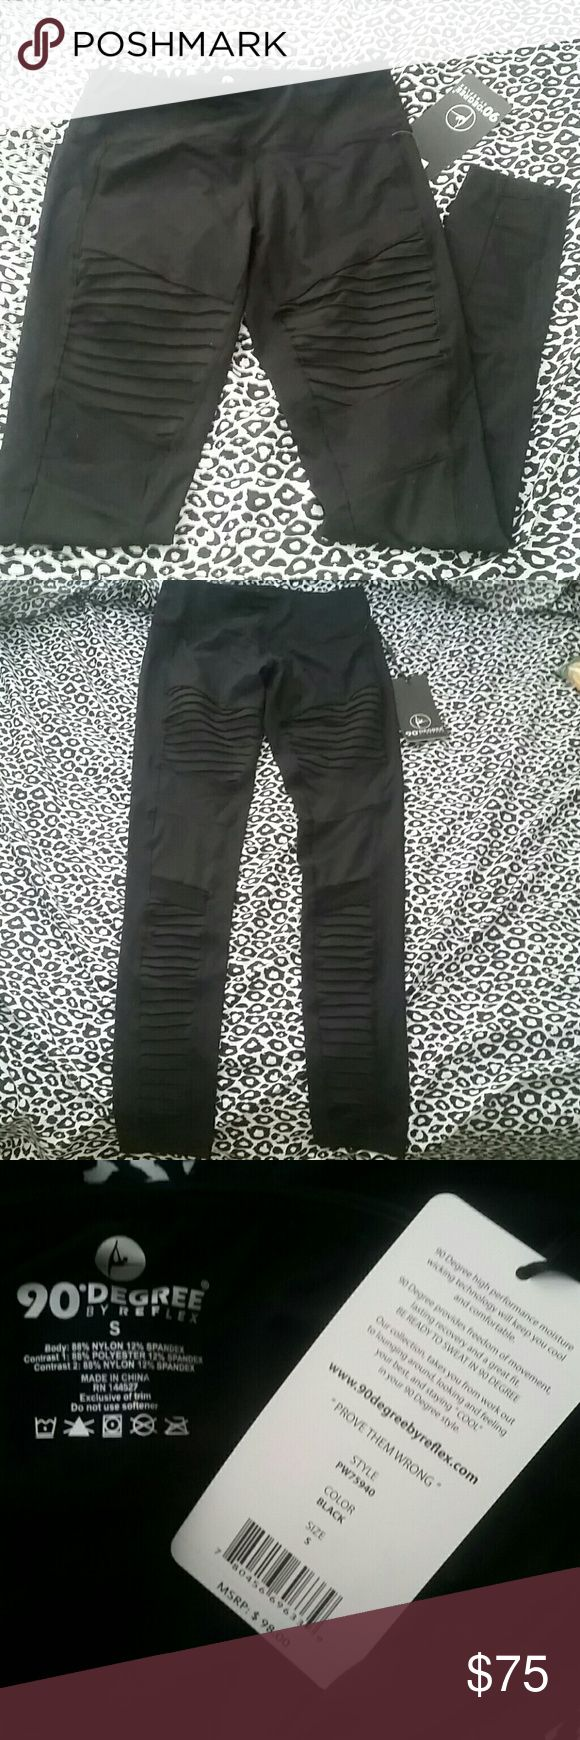 Reflex leggings Sale tonight only!!  NWT. Retails for $98. Cute design. Great for going out or for the gym--either way you'll be lookin' good!!  FYI: Buy one and get one 50% off of equal or lesser value! Shop before sale ends and it's too late!! When will sale end??? Haven't decided lol... so help my treasures find a new home! Please help me help you SAAVVVEEEEE!!!! Pants Leggings